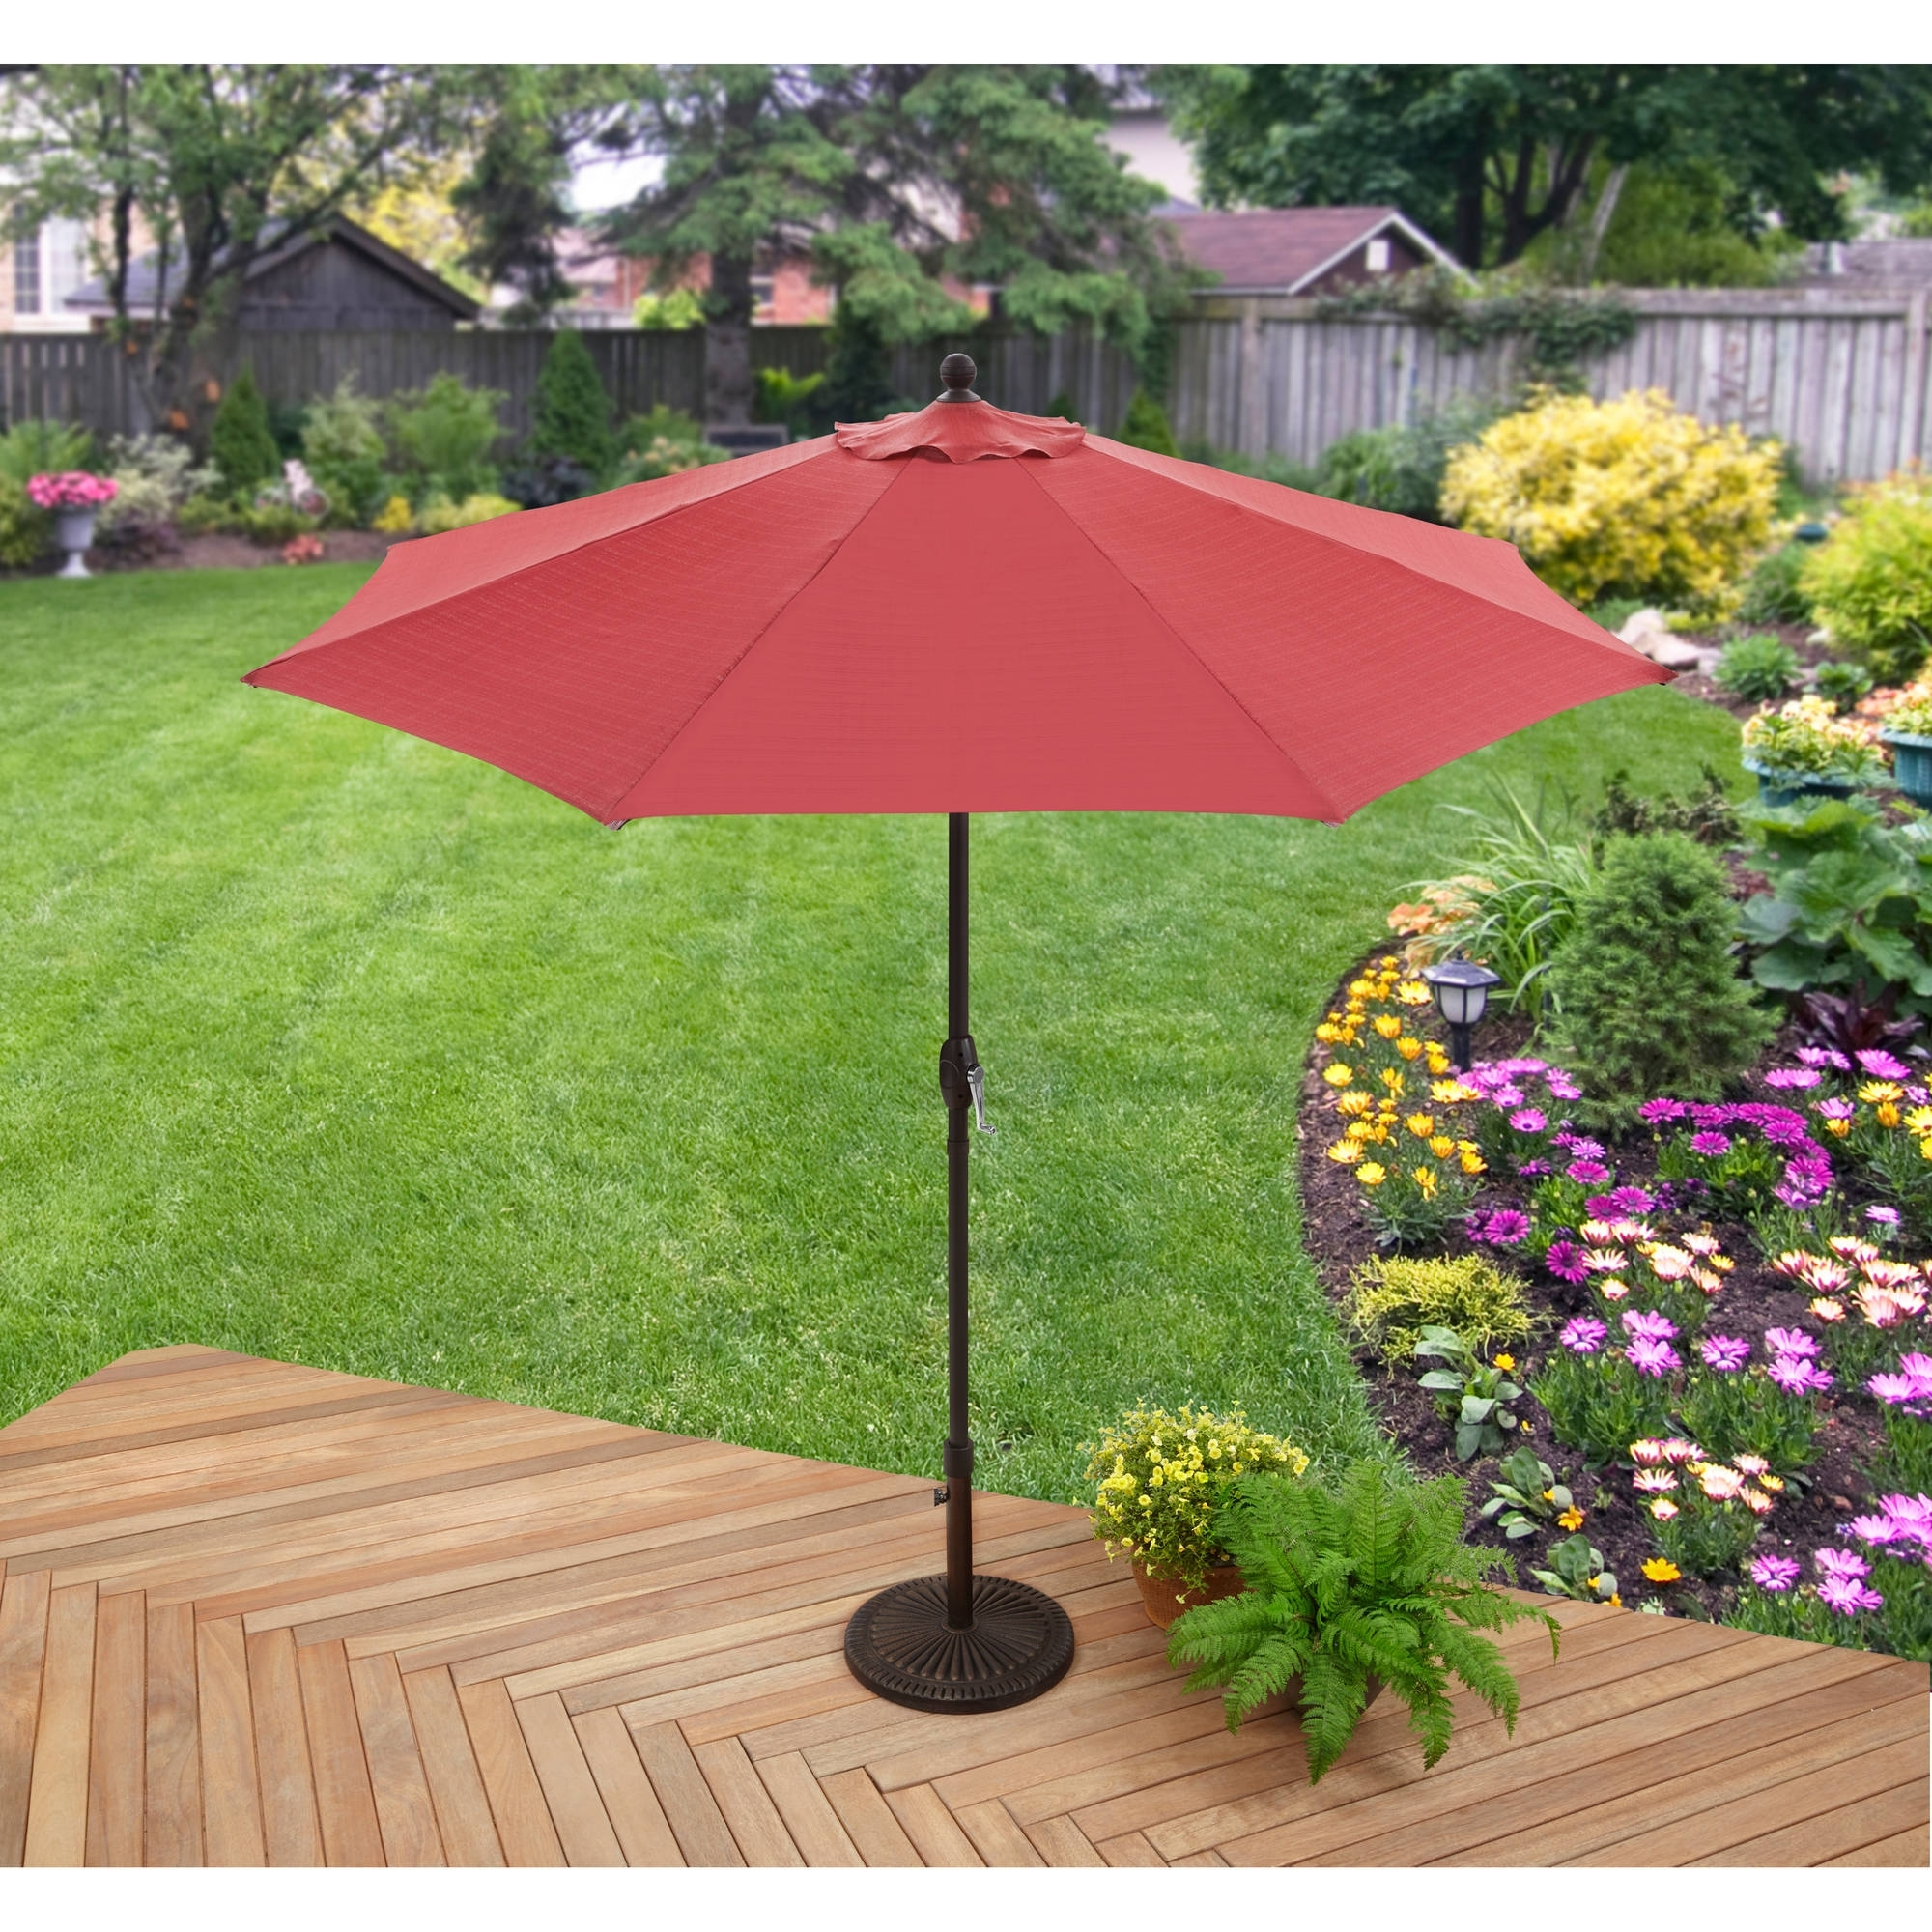 Most Current Walmart Patio Umbrellas For Better Homes And Gardens 9' Market Umbrella, Red – Walmart (View 8 of 20)